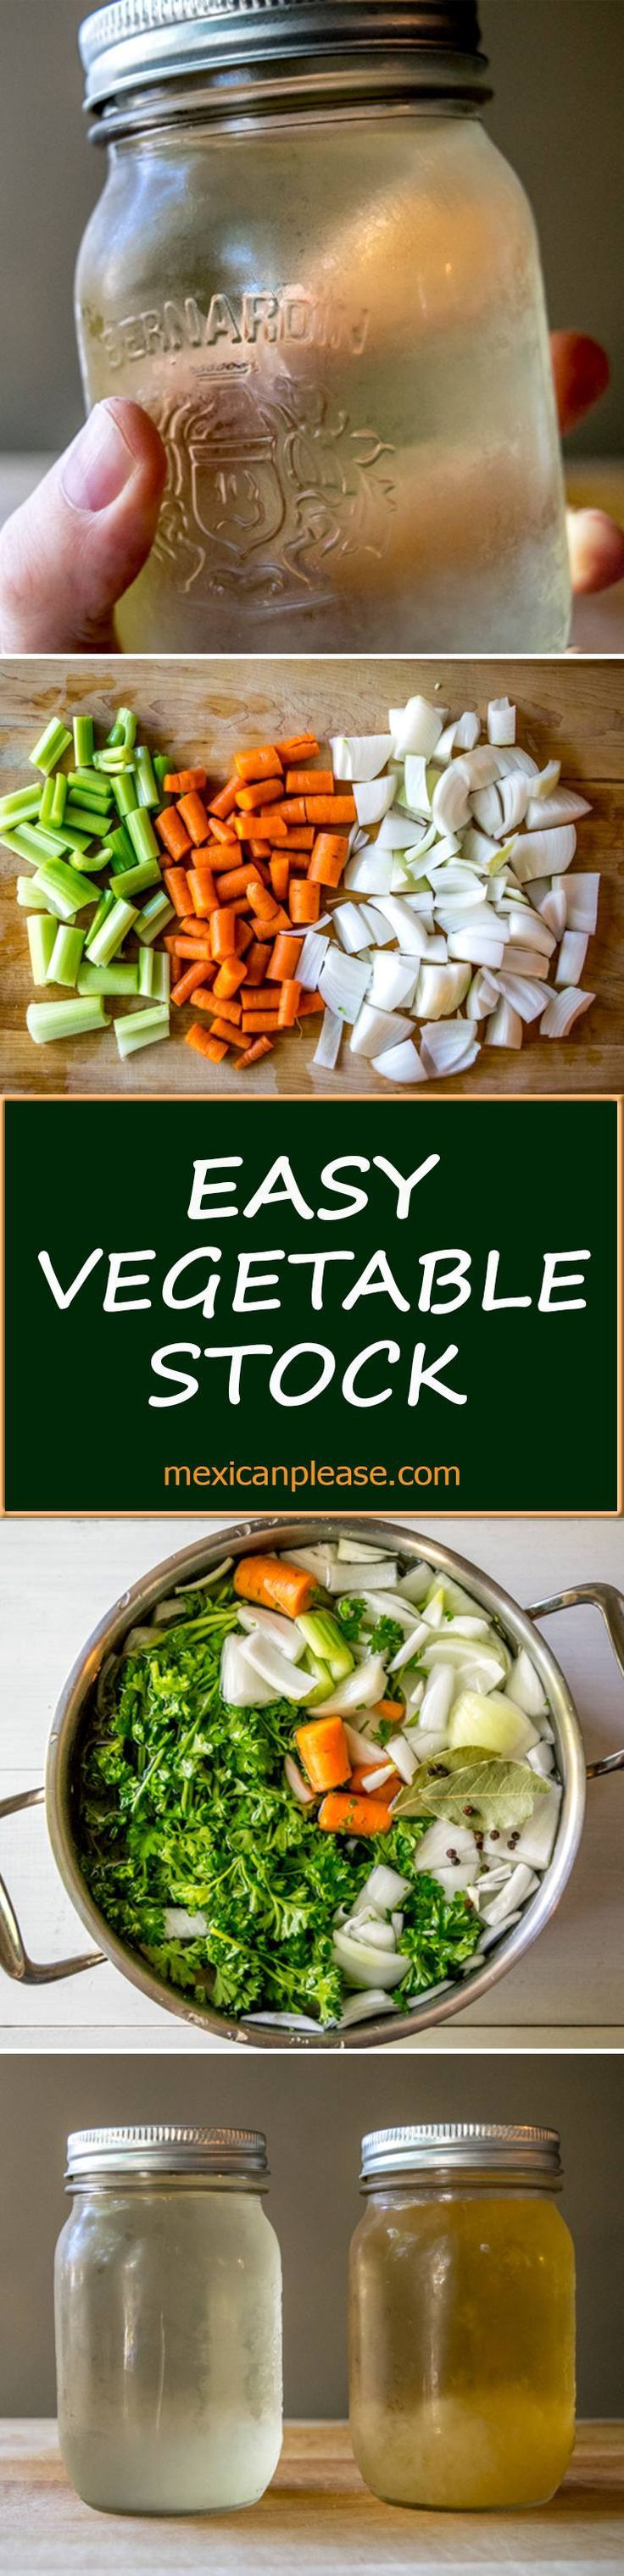 Vegetable stock can rival even the finest meat-based stocks and it is ridiculously easy to make.  Your new secret weapon!  Includes tips for a roasted version.  http://mexicanplease.com